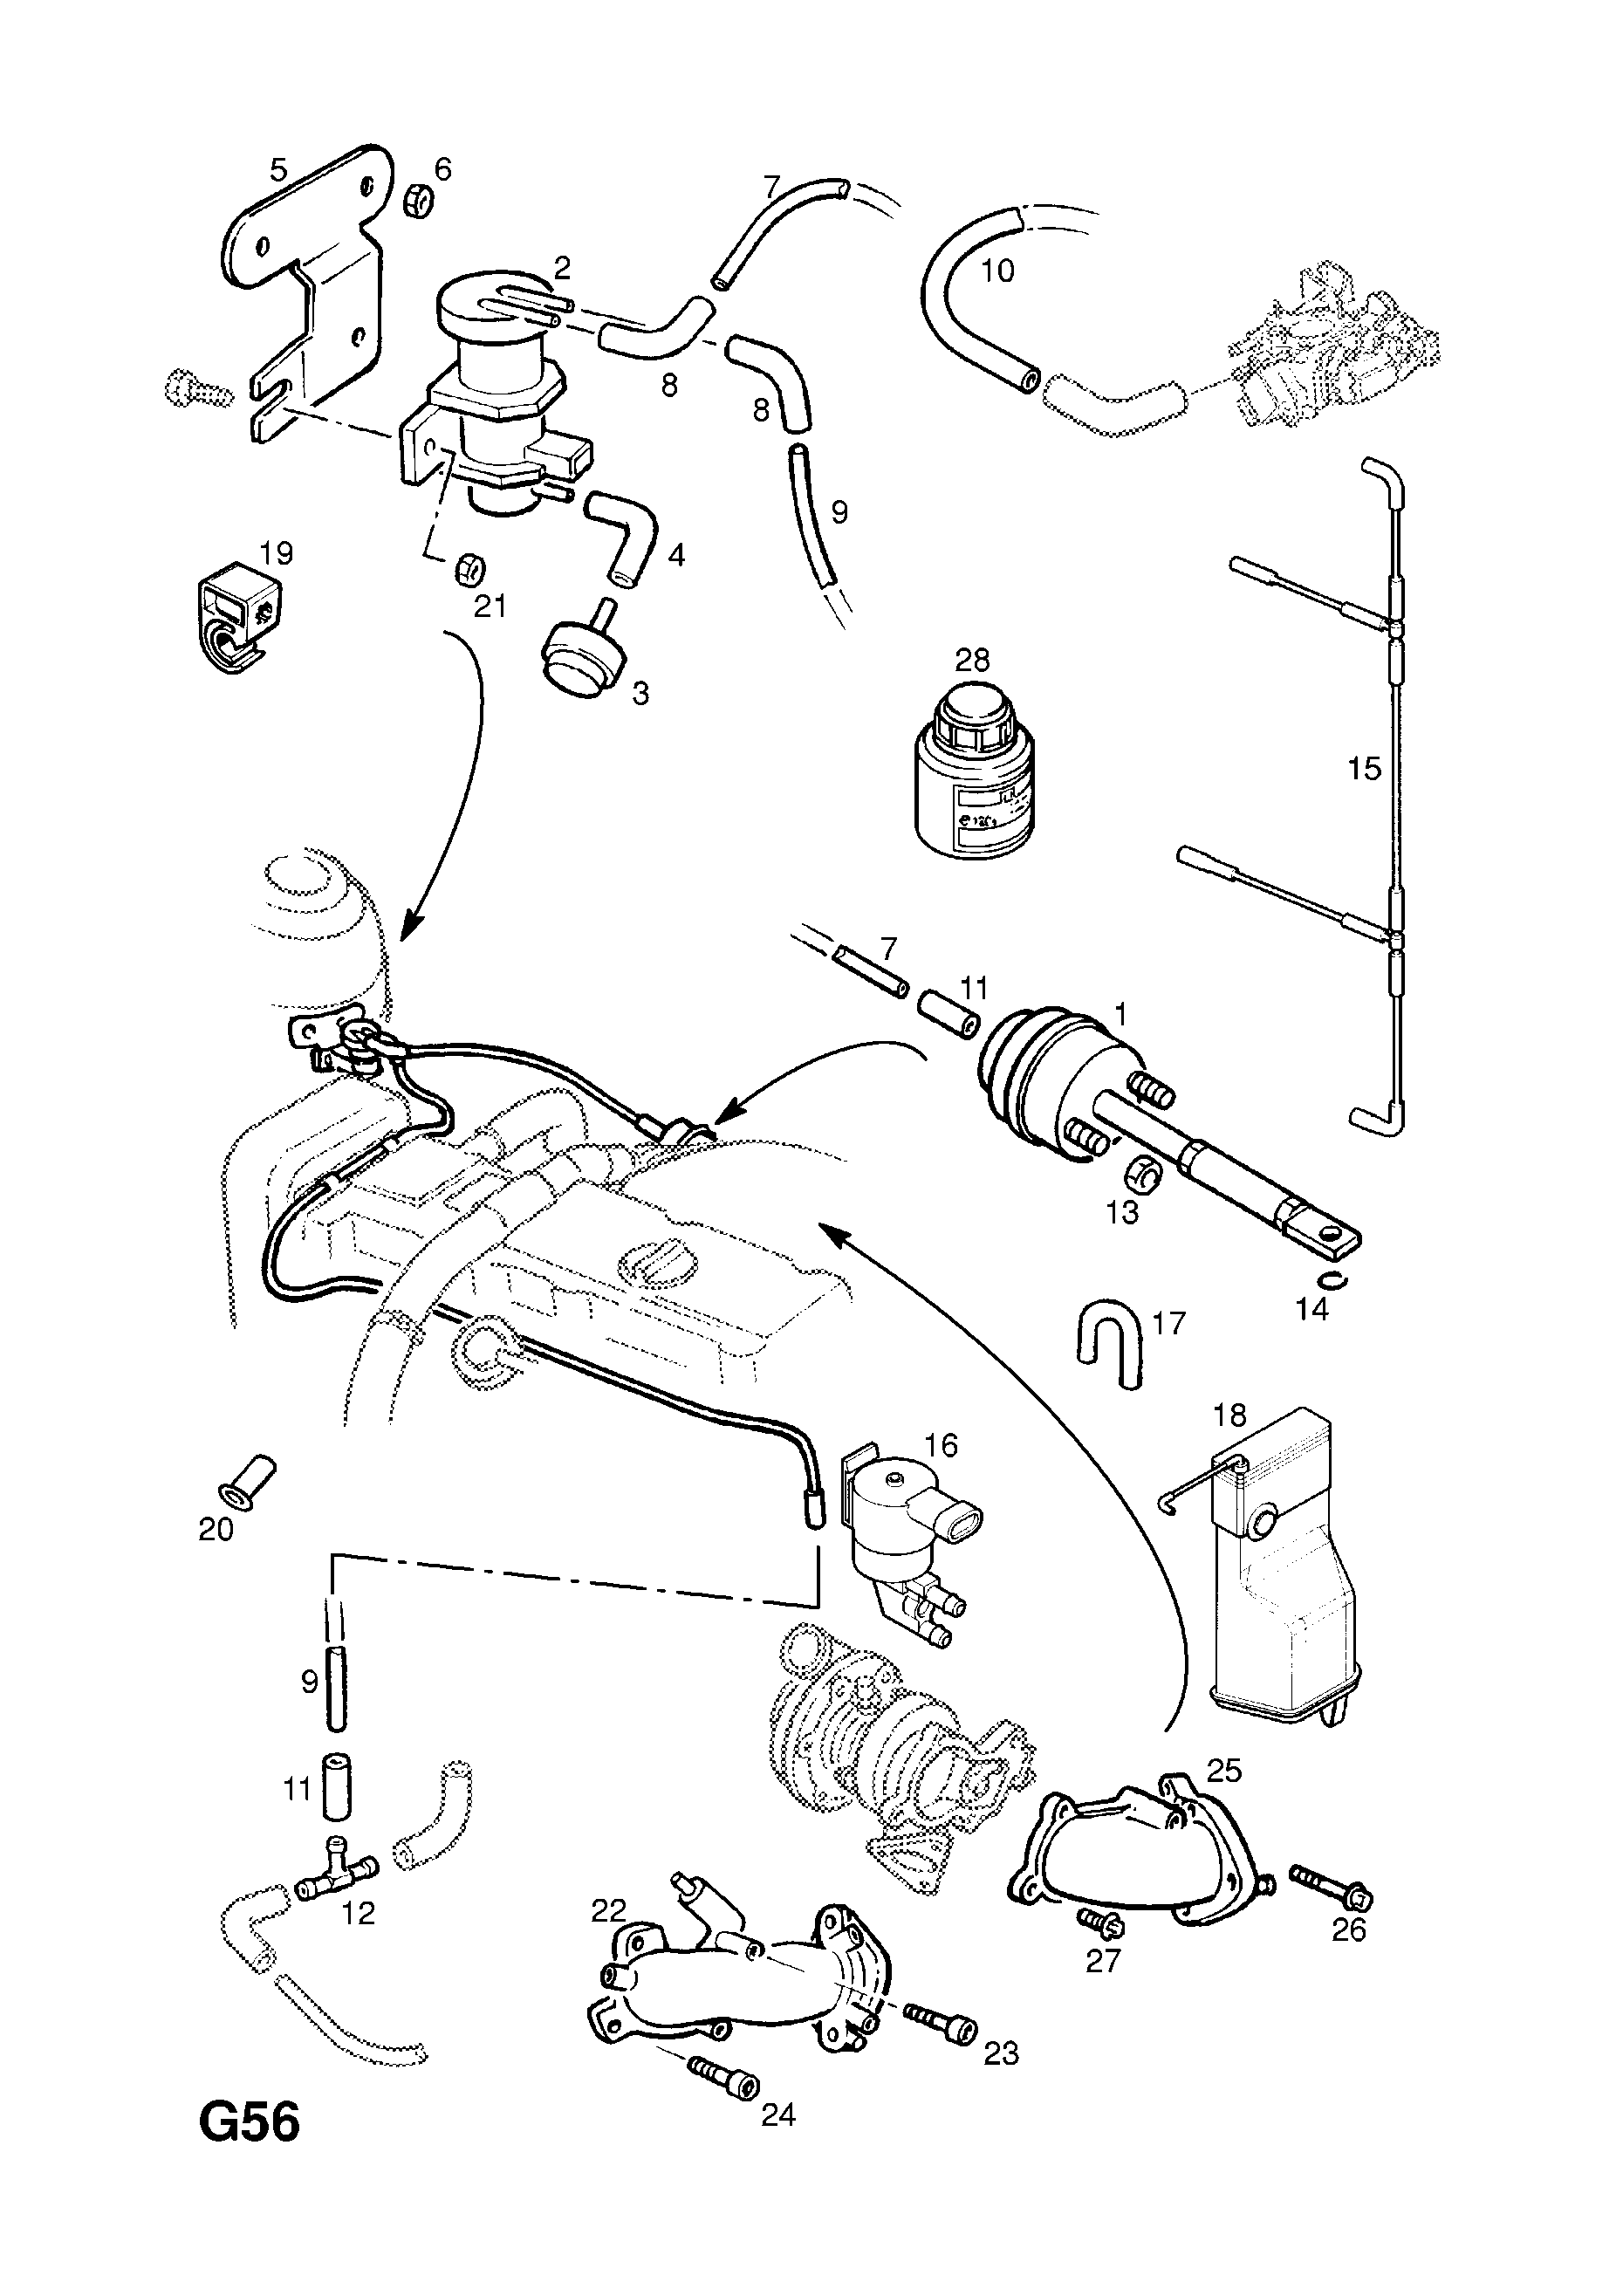 Opel Vacuum Diagram - Schematics Online on